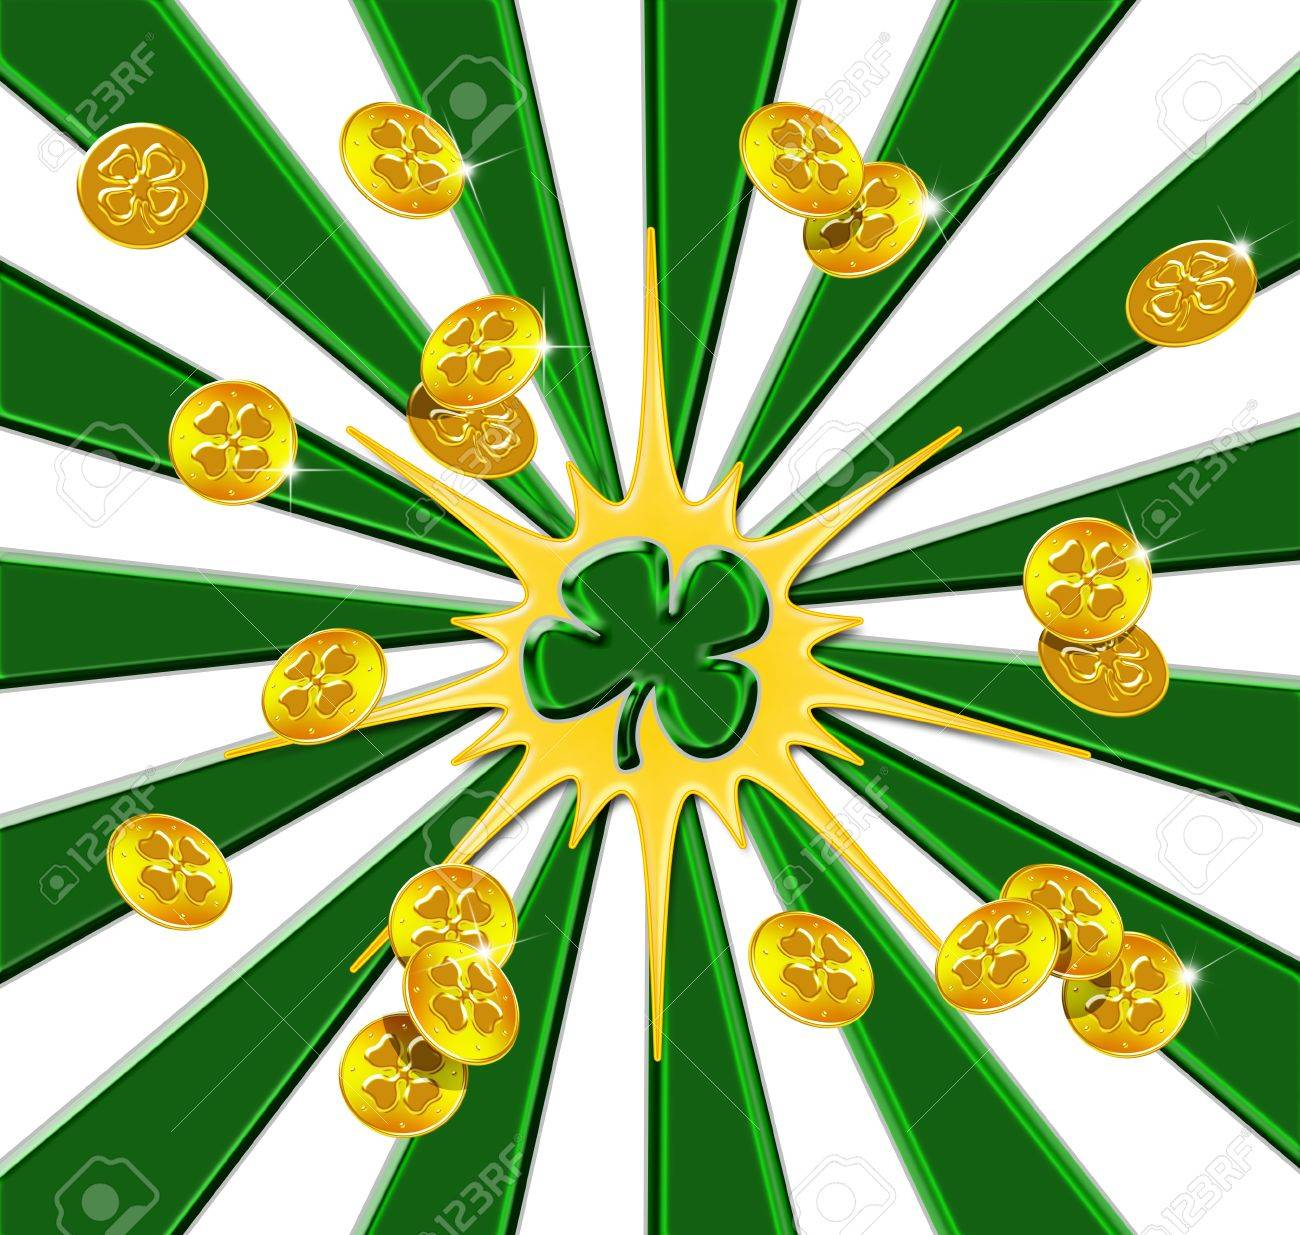 gold coins from a pot of gold scattering outward from a shamrock